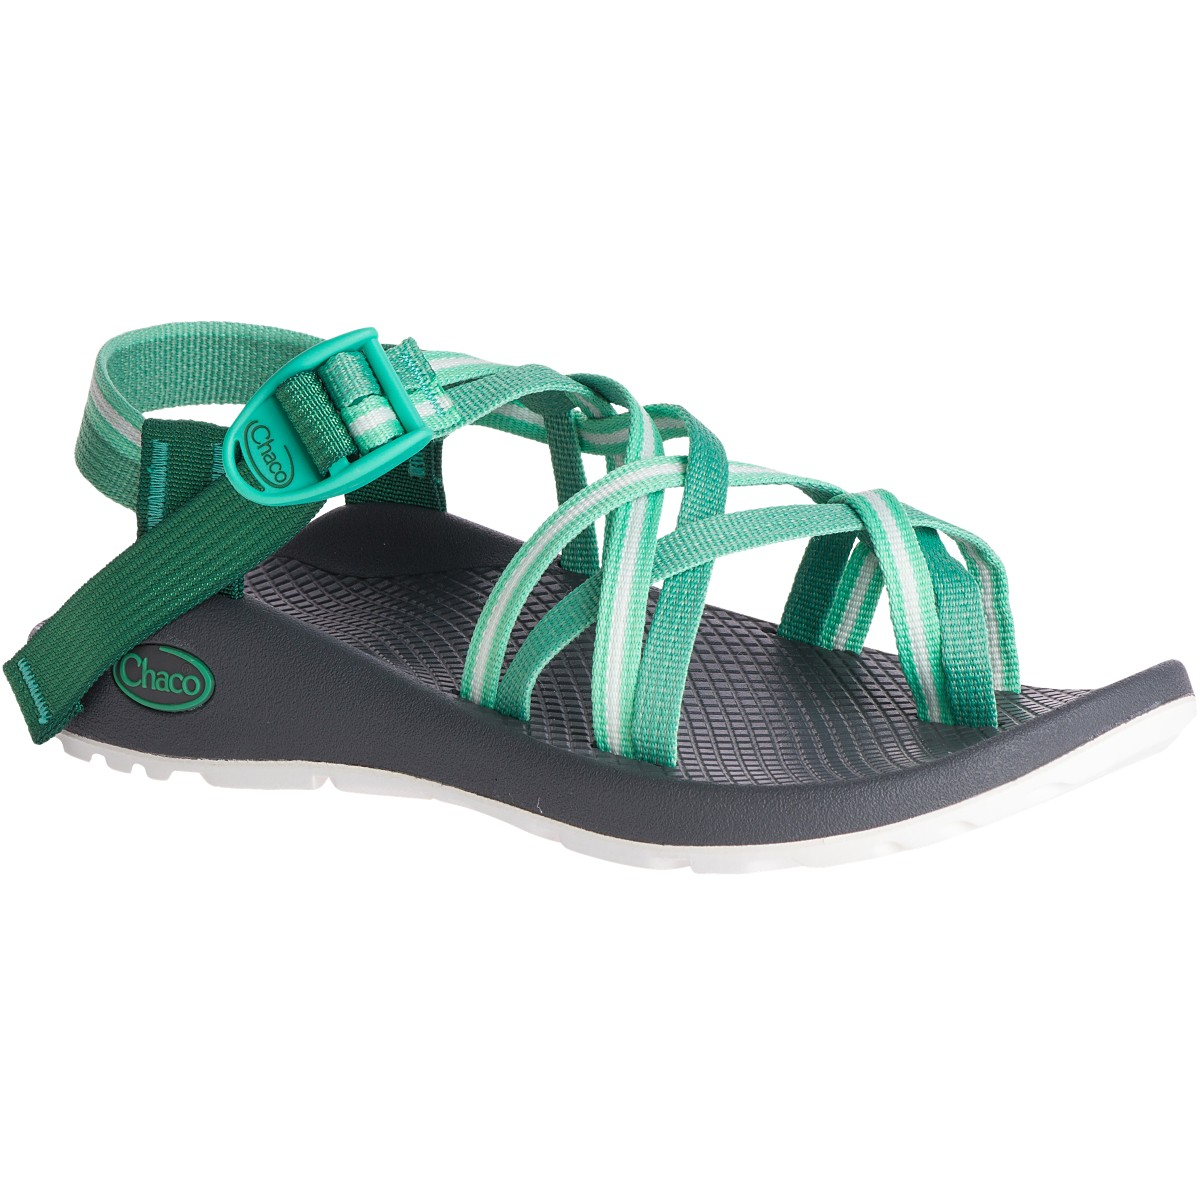 6550577d9dad Chaco ZX2 Classic Sandal - Women